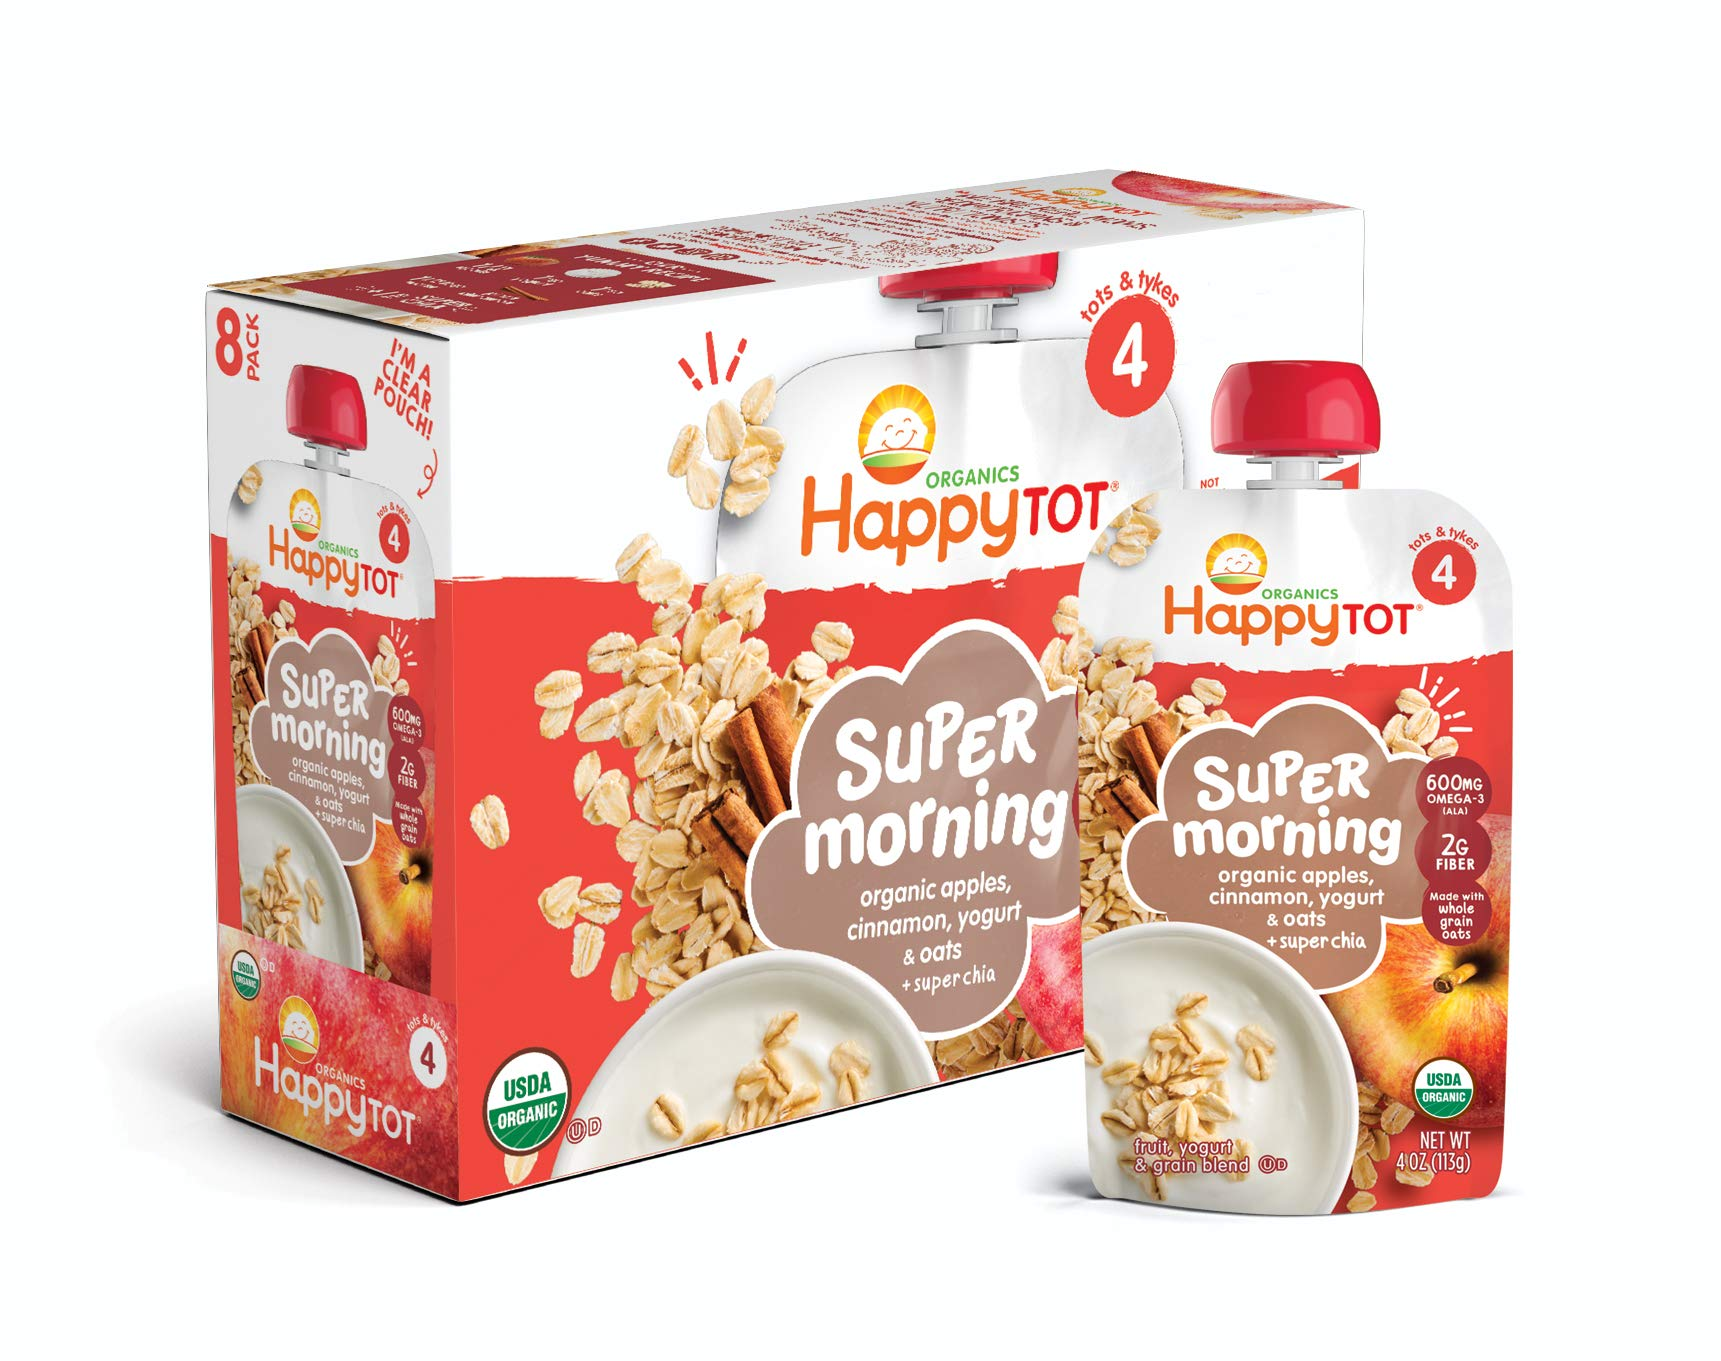 Happy Tot Organic Stage 4 Super Morning Organic Apple Cinnamon Yogurt Oats + Super Chia, 4 Ounce Pouch (Pack of 8) (Packaging May Vary)